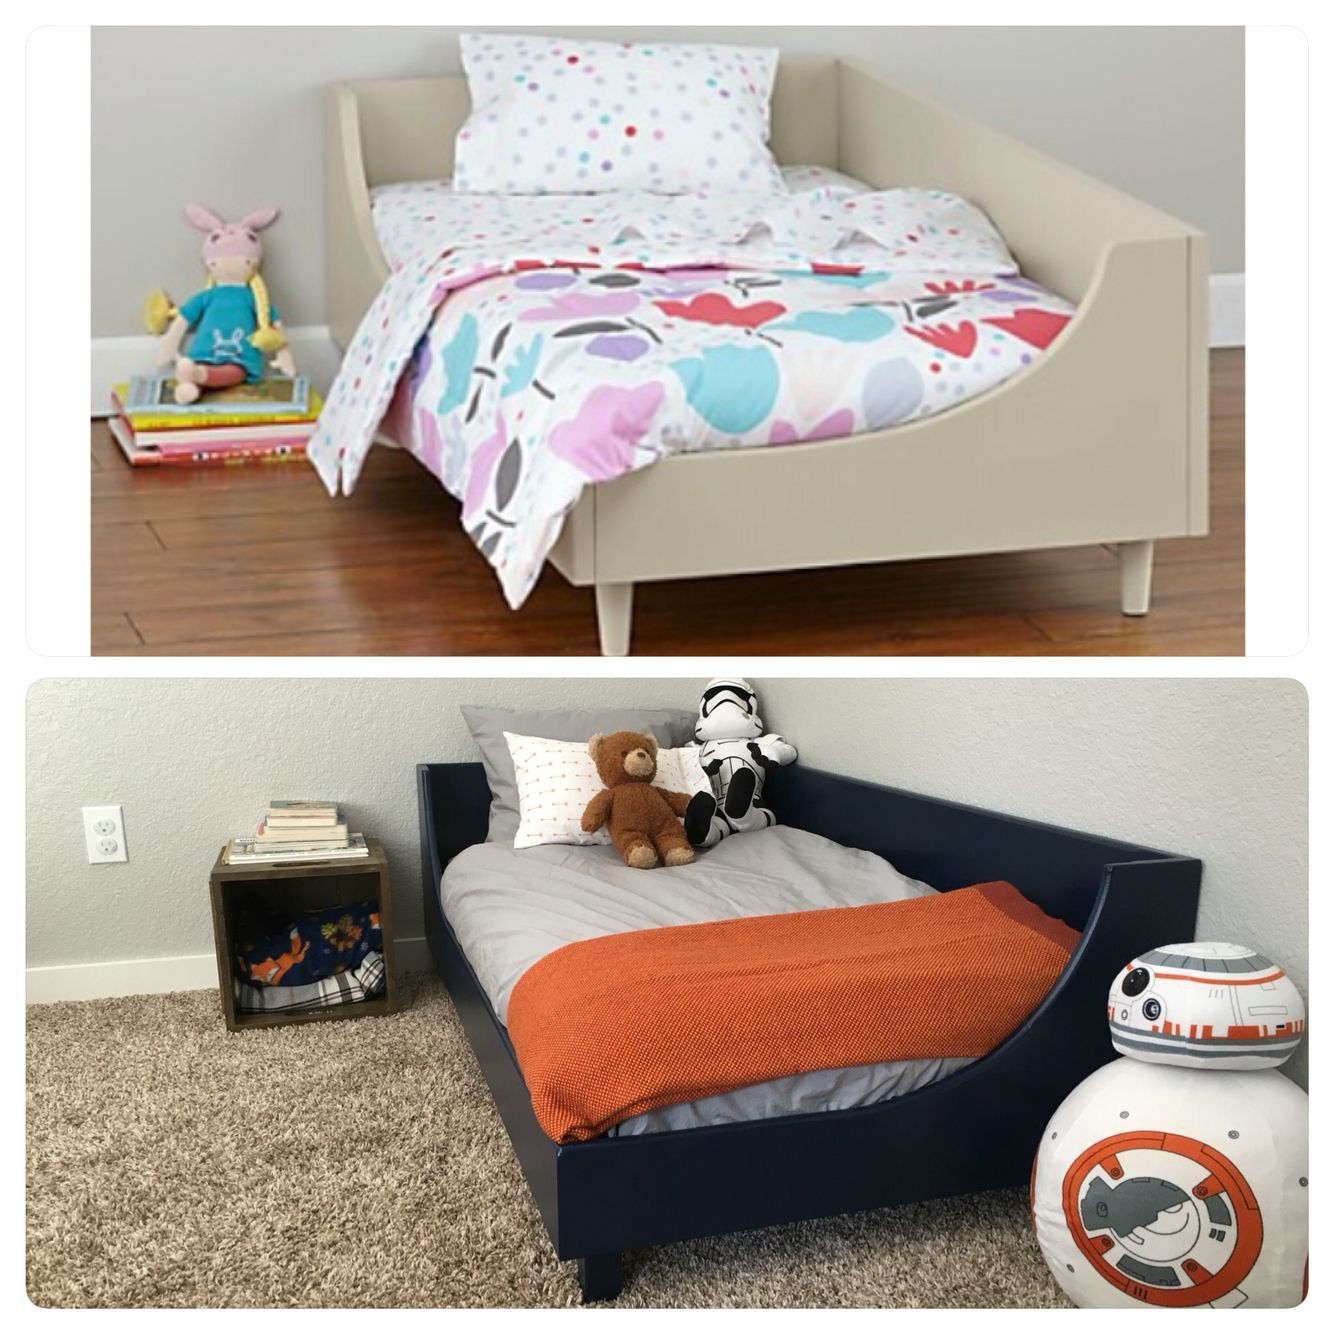 Diy Toddler Bed Land Of Nod Toddler Bed Inspiration Sherwin Williams In The Navy Paint Toddler B Toddler Boys Room Diy Toddler Bed Pottery Barn Kids Duvet